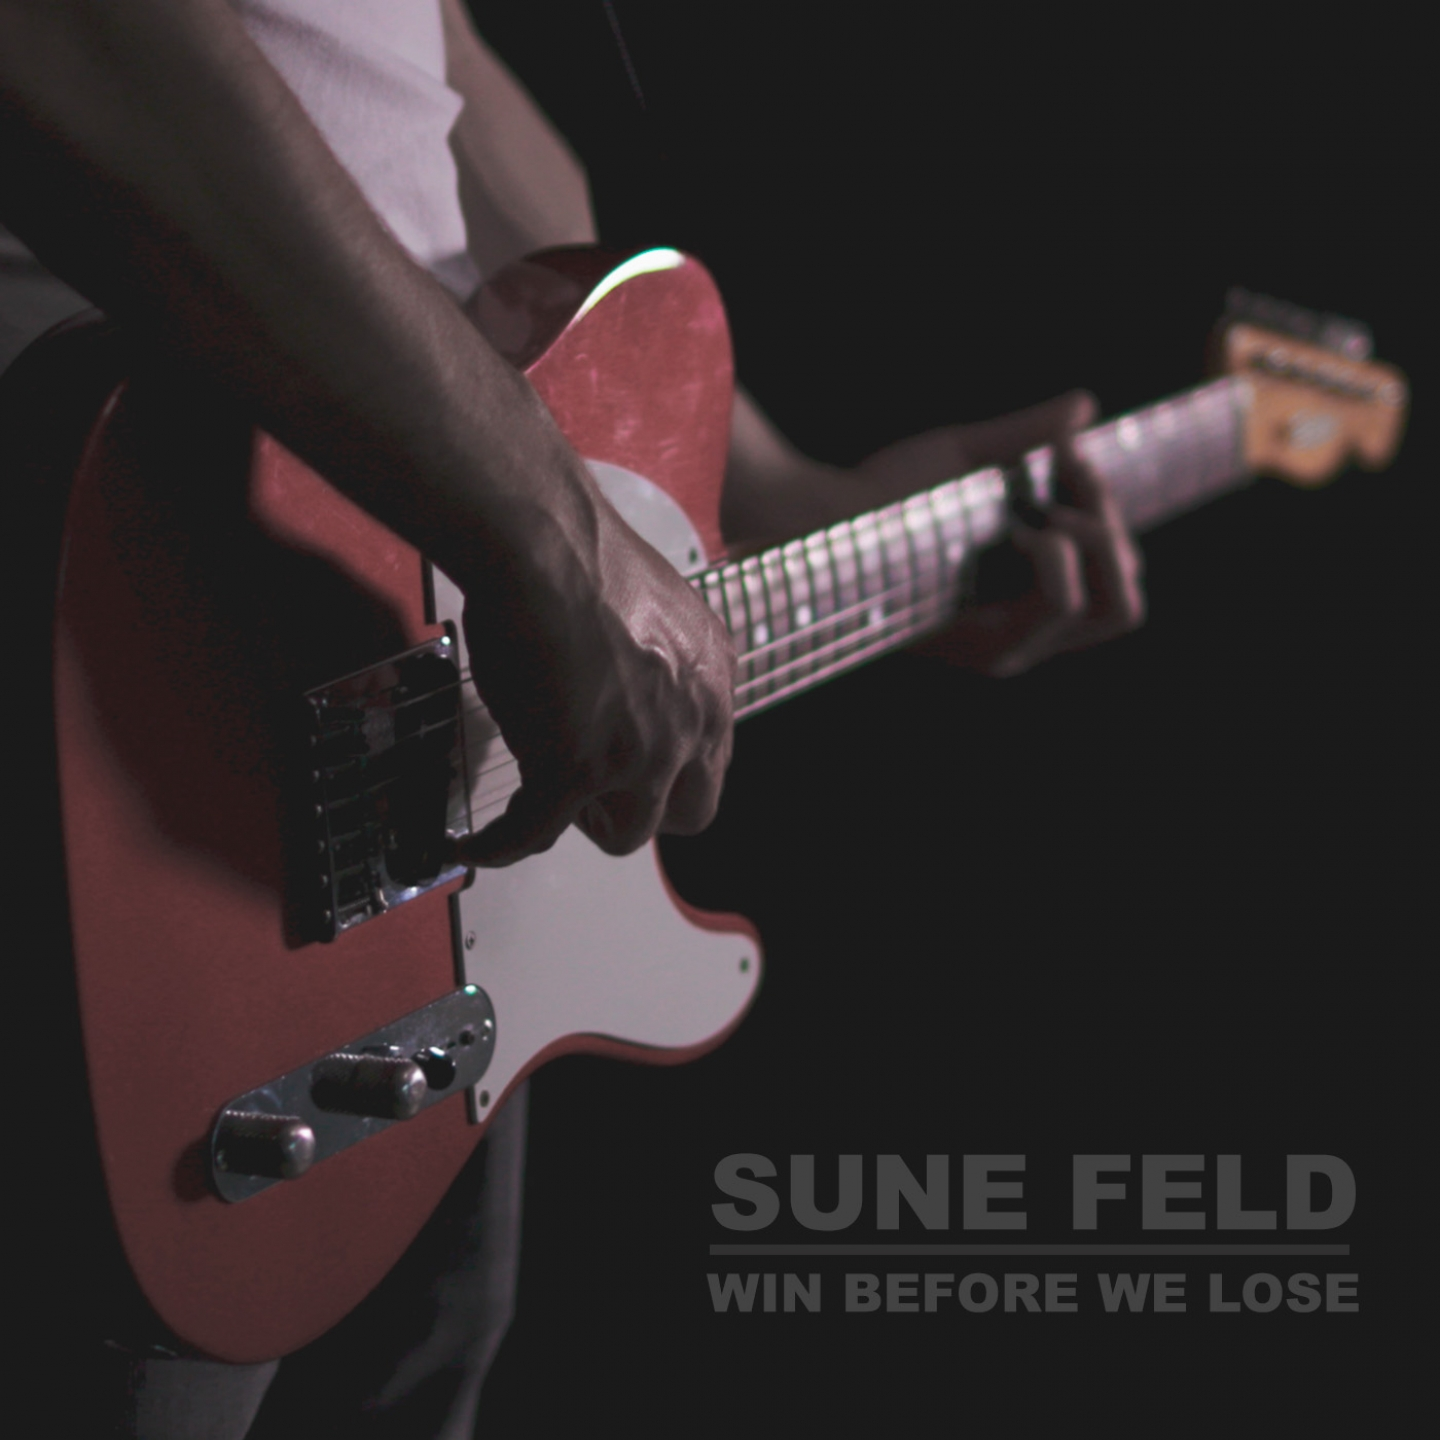 Sune Feld – 'Win Before We Lose' (Single)